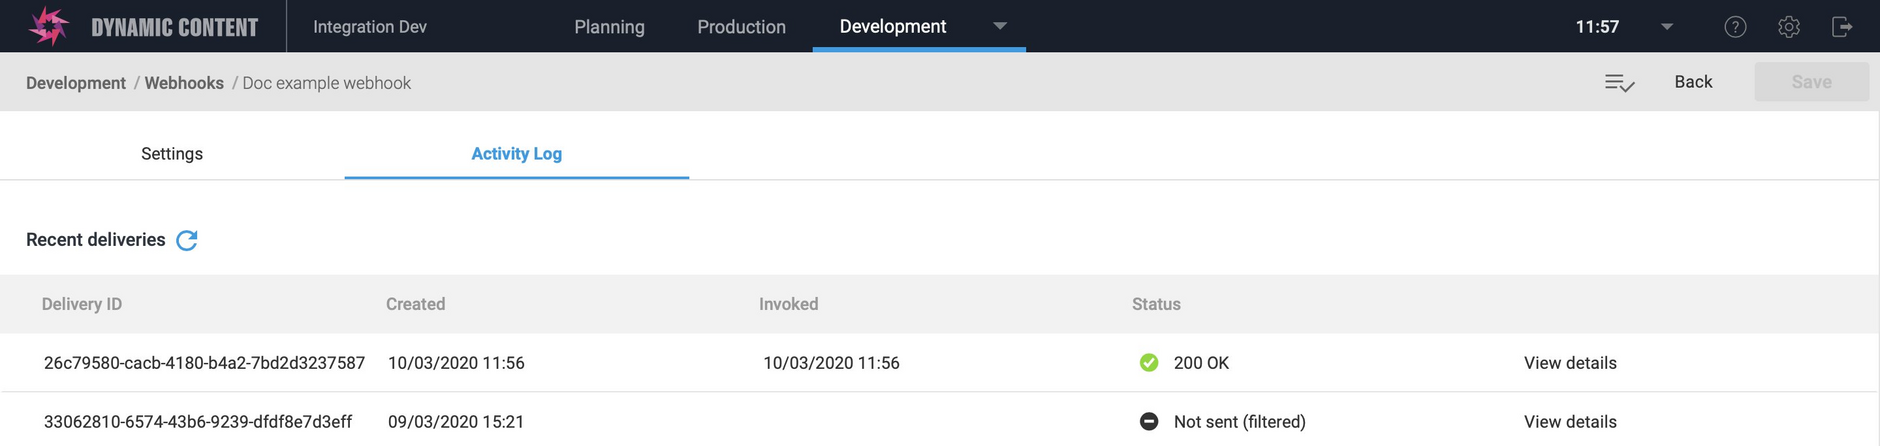 The recent deliveries list is updated and shows the new webhook delivery